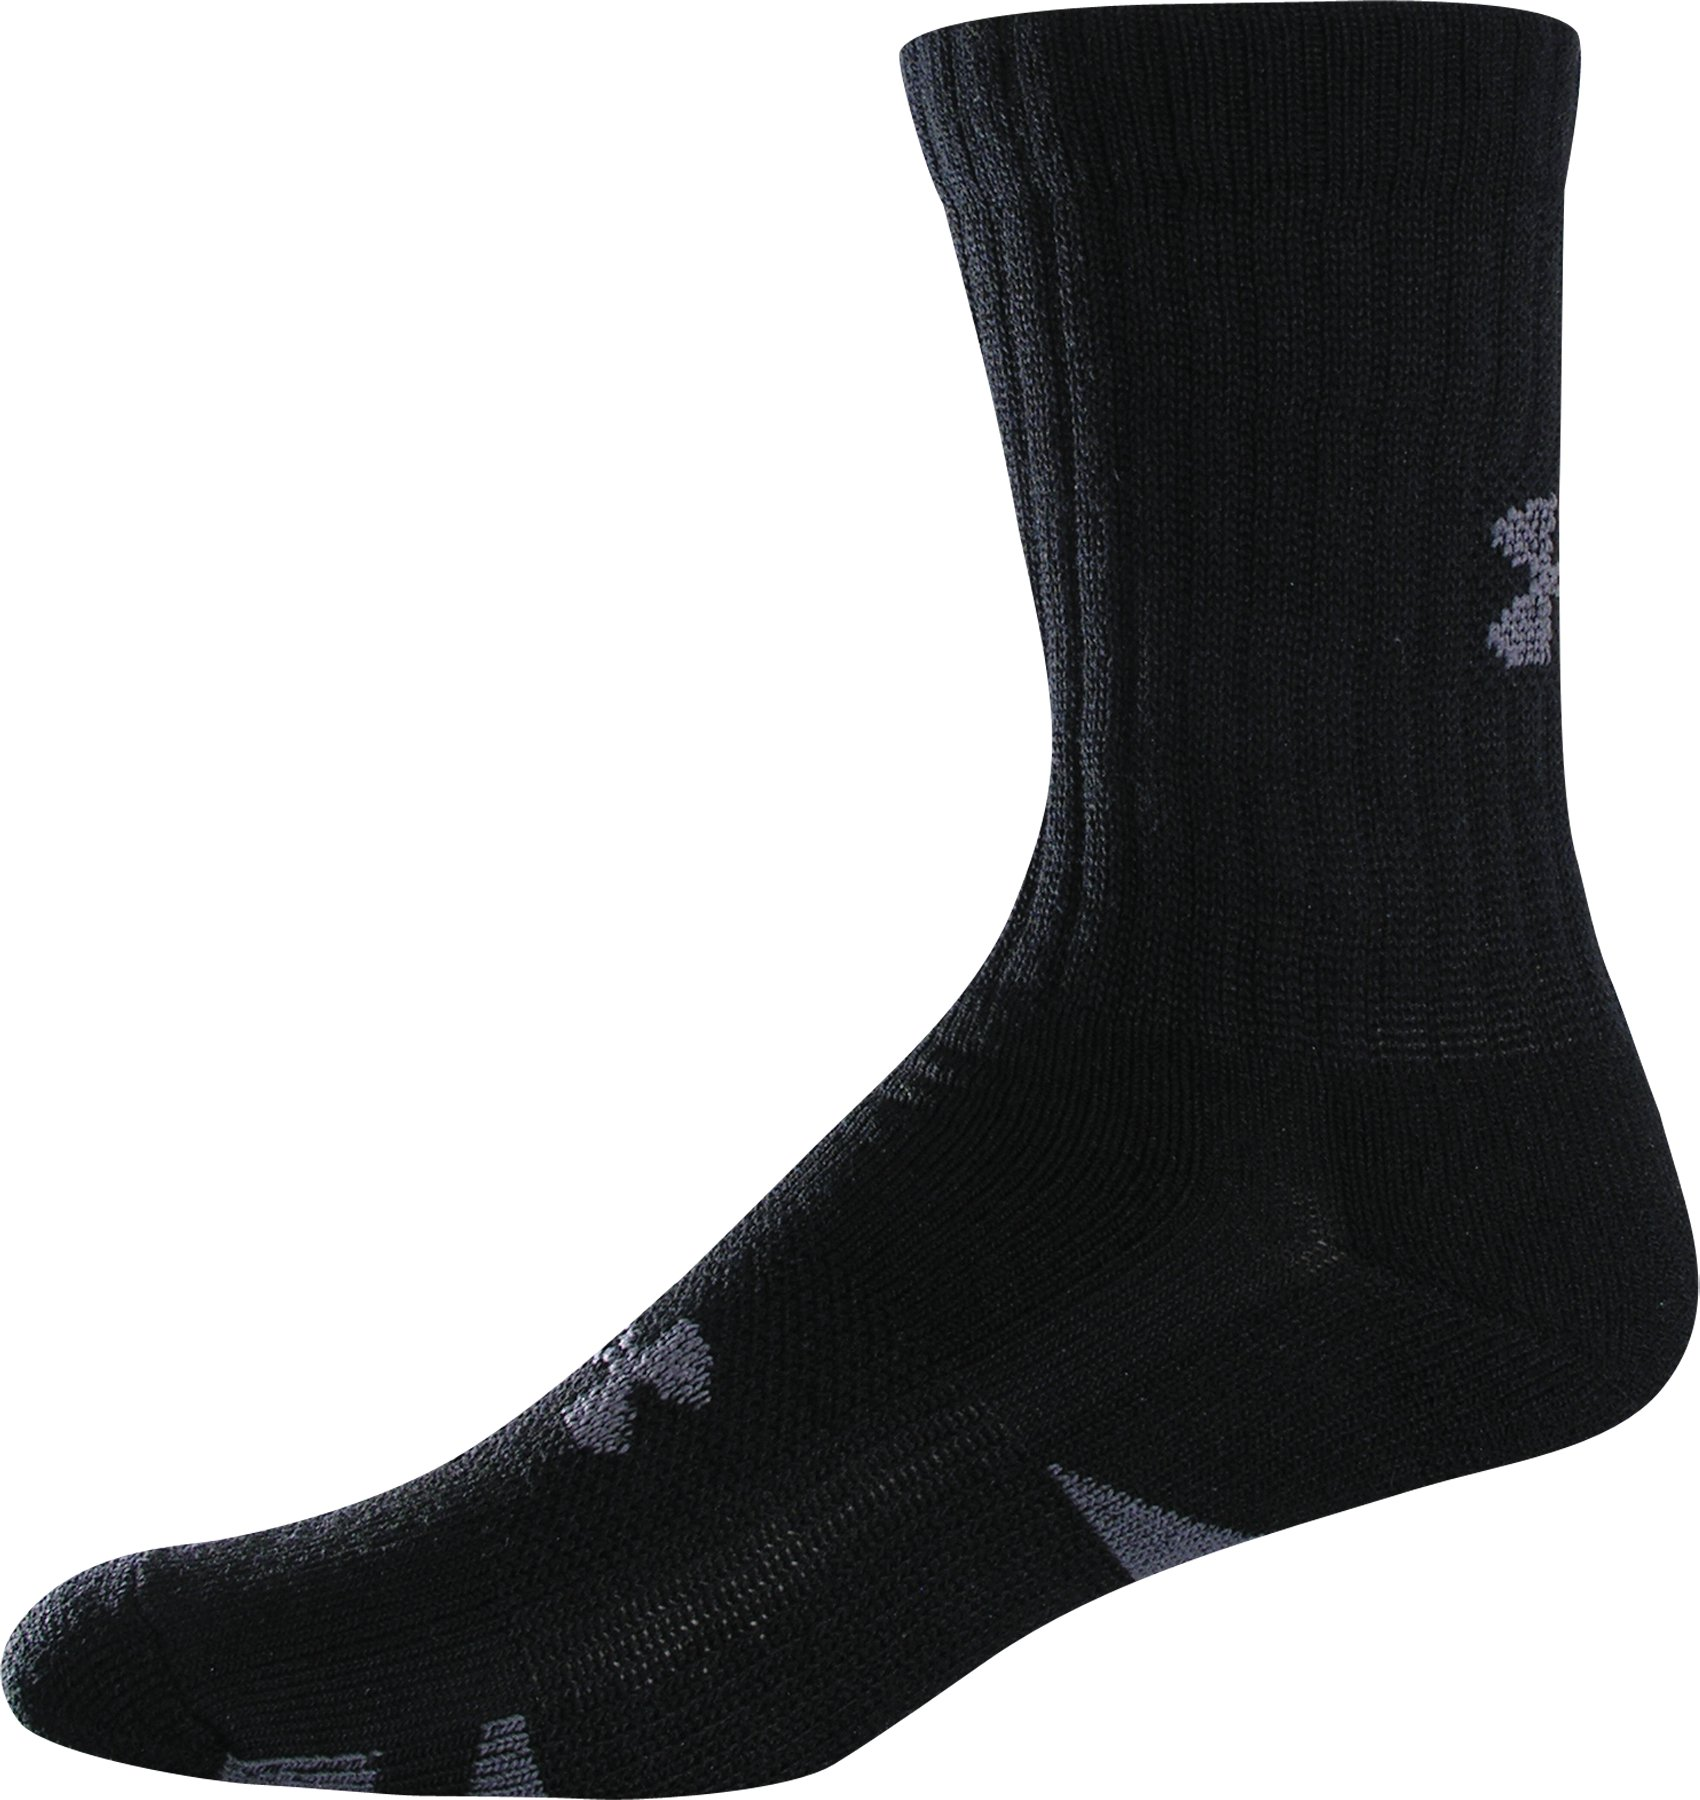 HeatGear® Trainer Crew Socks 4-Pack, Black , zoomed image